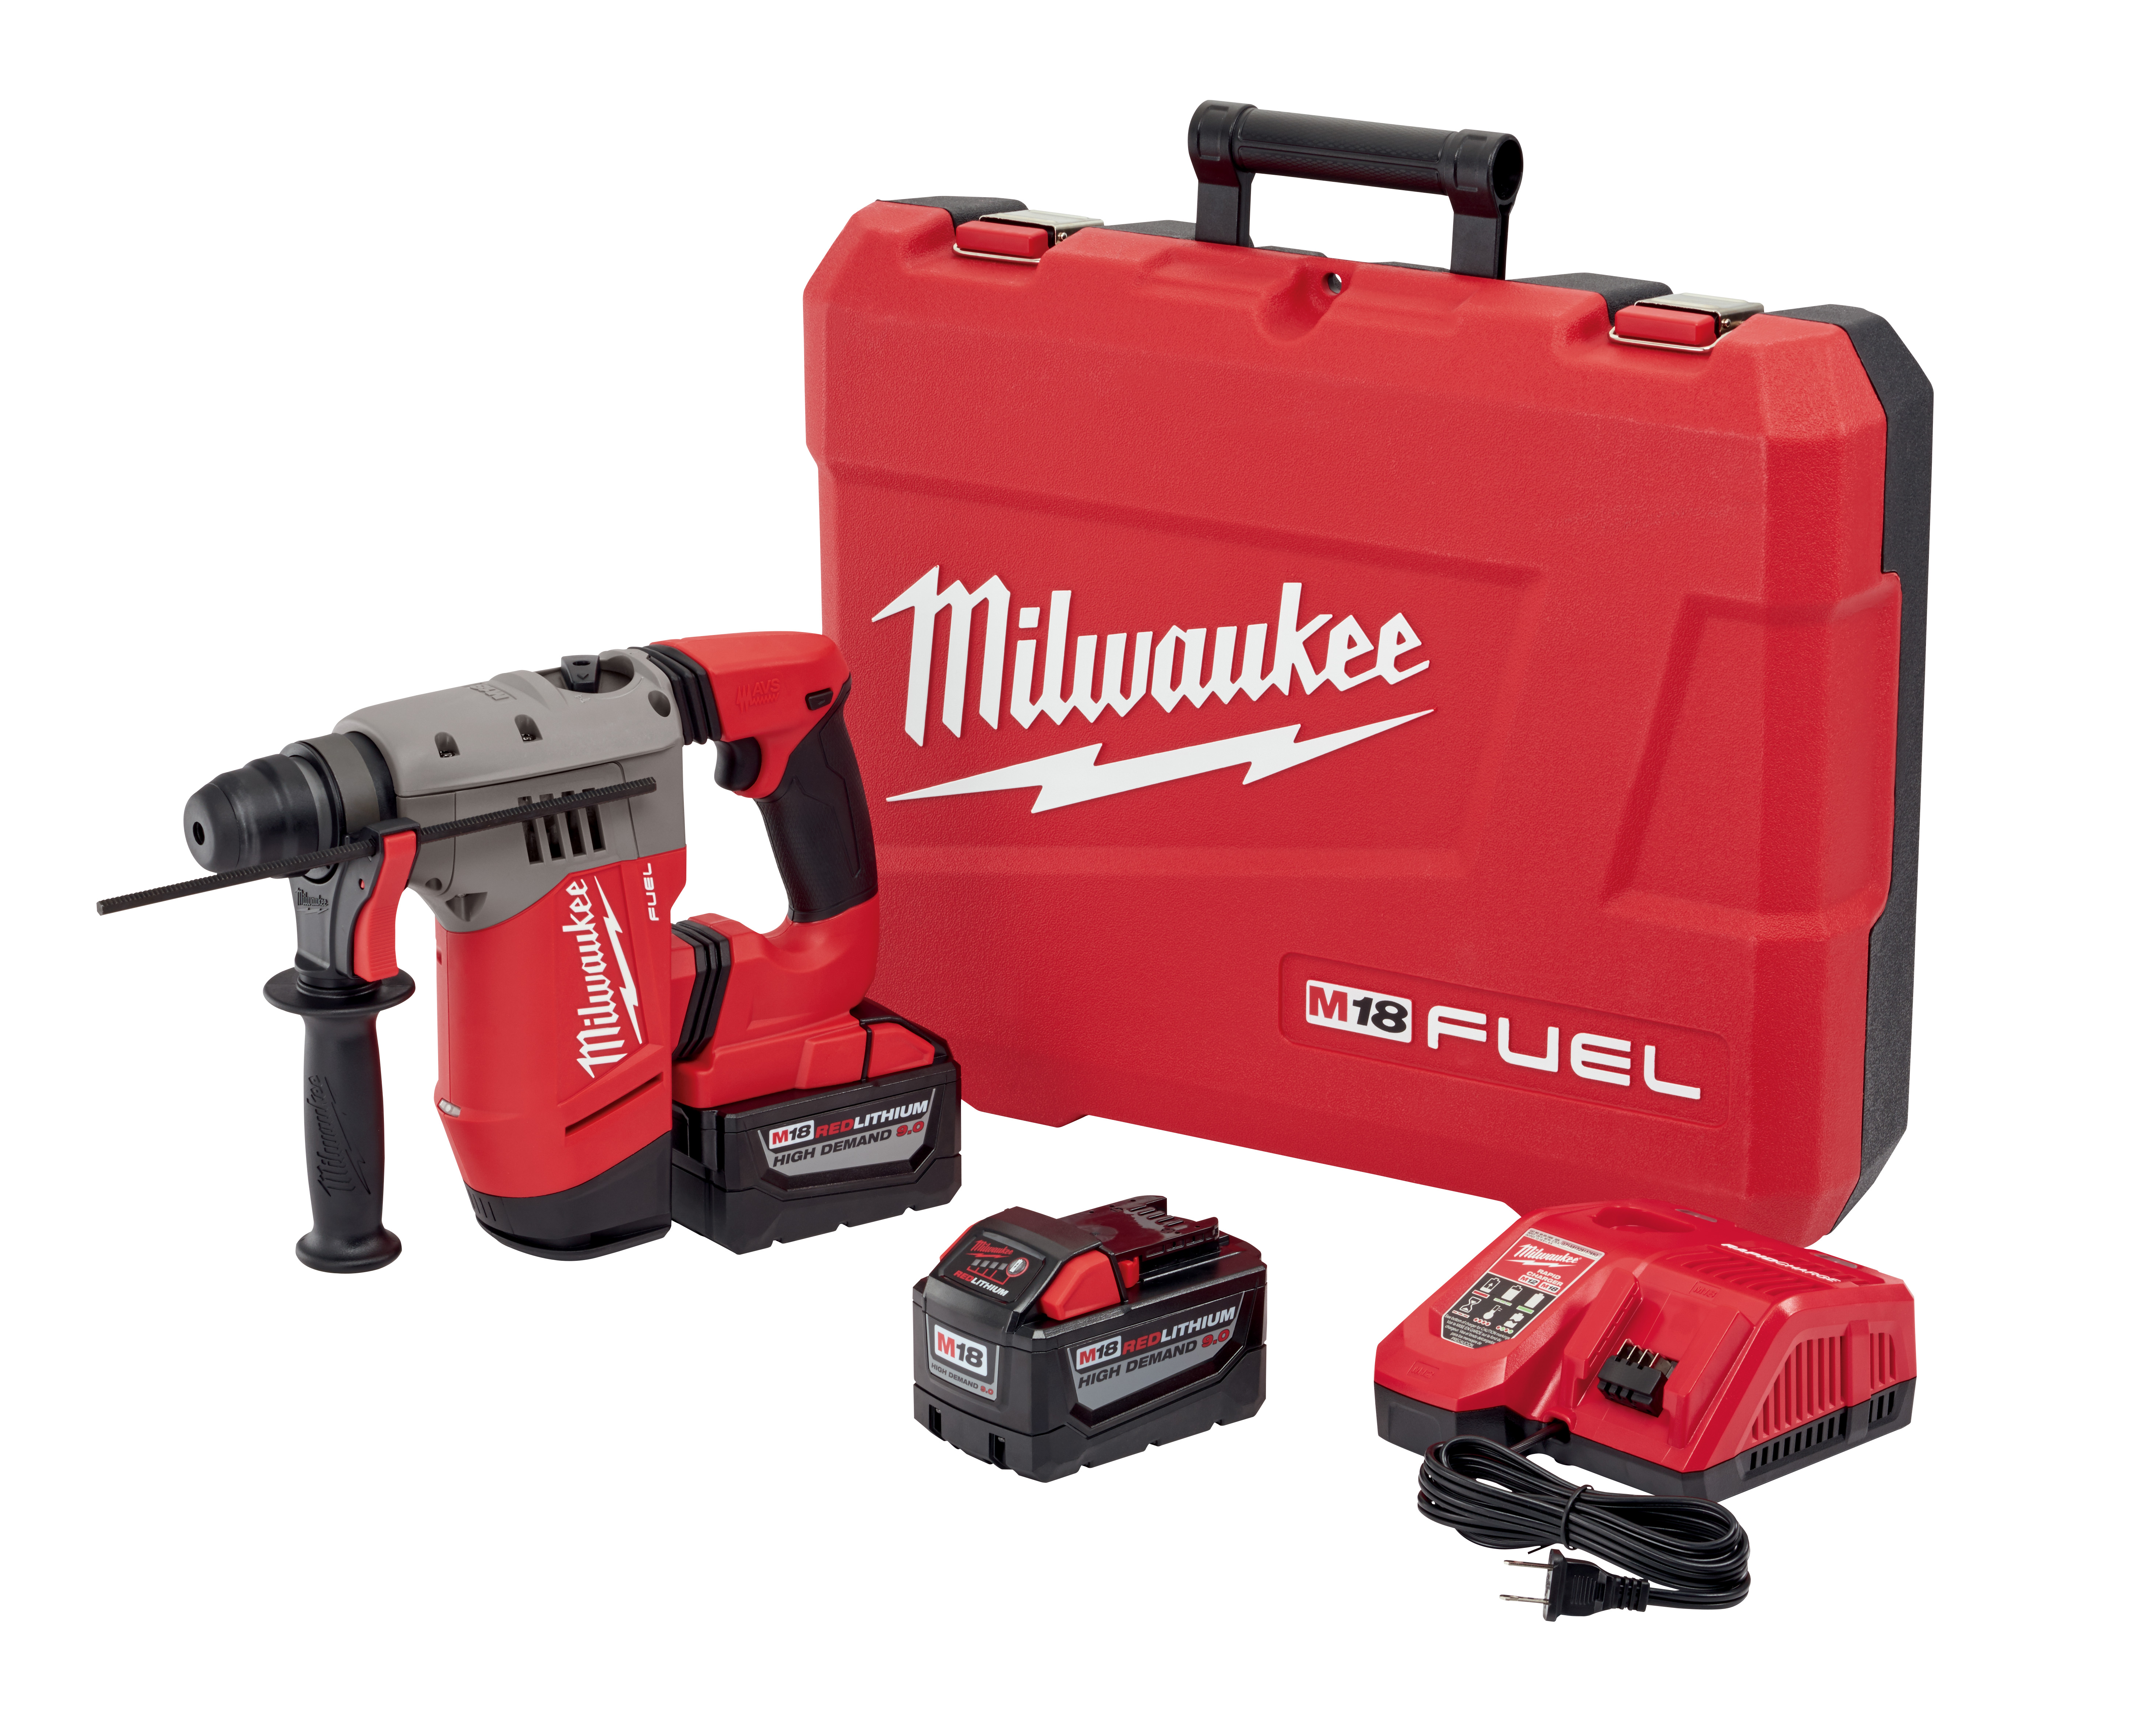 Milwaukee® M18 FUEL™ 2715-22HD Cordless Rotary Hammer Kit, 1-1/8 in SDS Plus® Chuck, 18 VDC, 0 to 1350 rpm No-Load, M18™ REDLITHIUM™ Lithium-Ion Battery